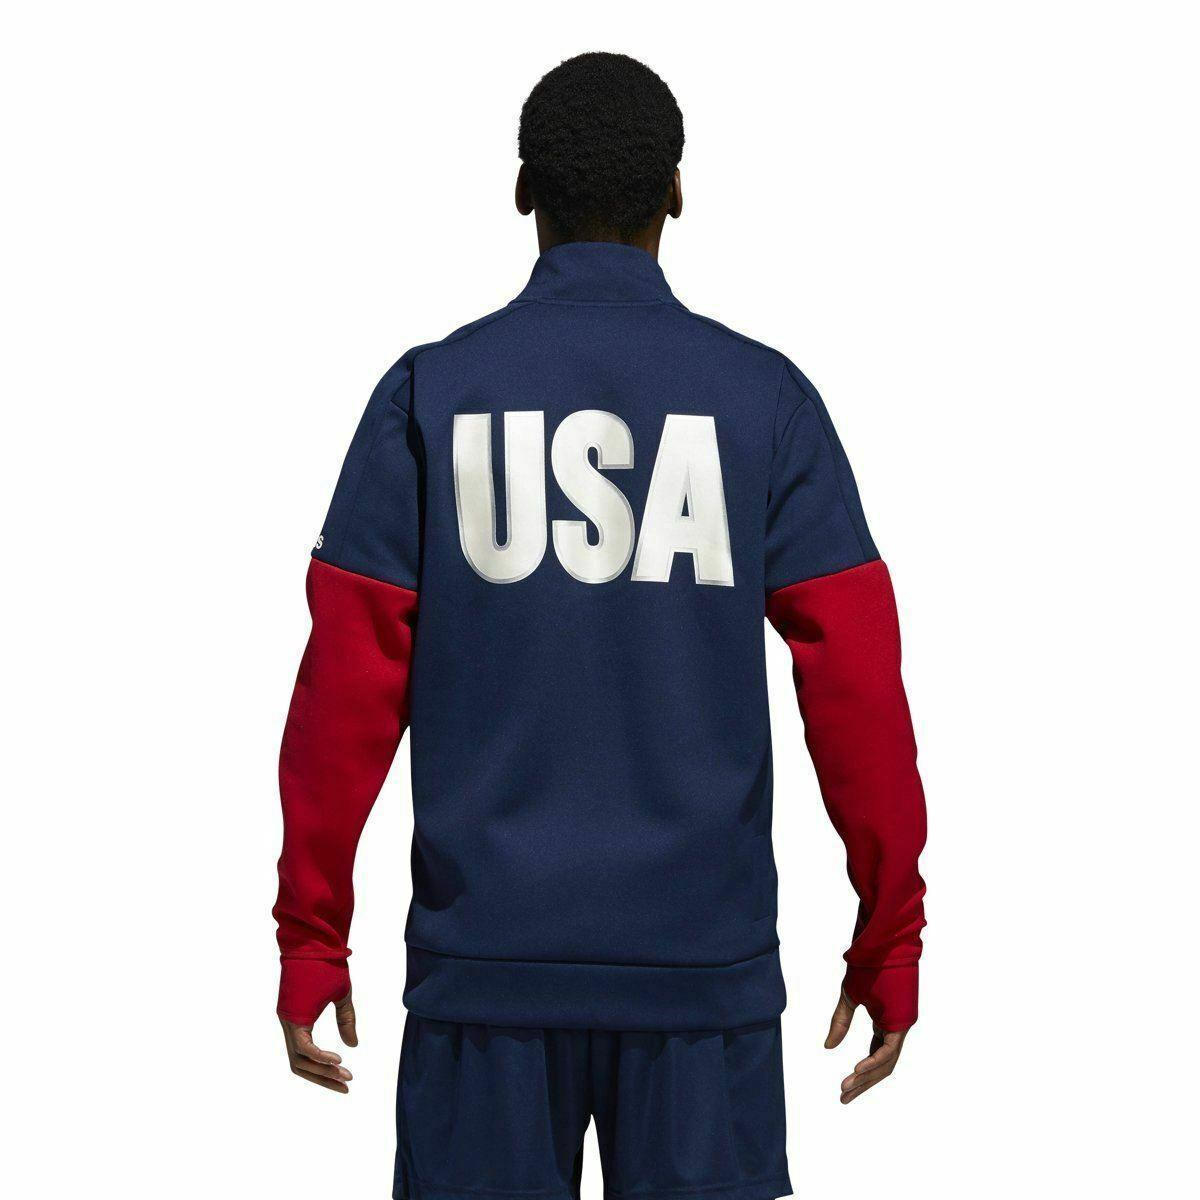 adidas-USA-VB-Mens-Jacket-Zip-Up-Warm-Up-Track-Top-RRP-45-Sale-Price-All-Sizes thumbnail 4